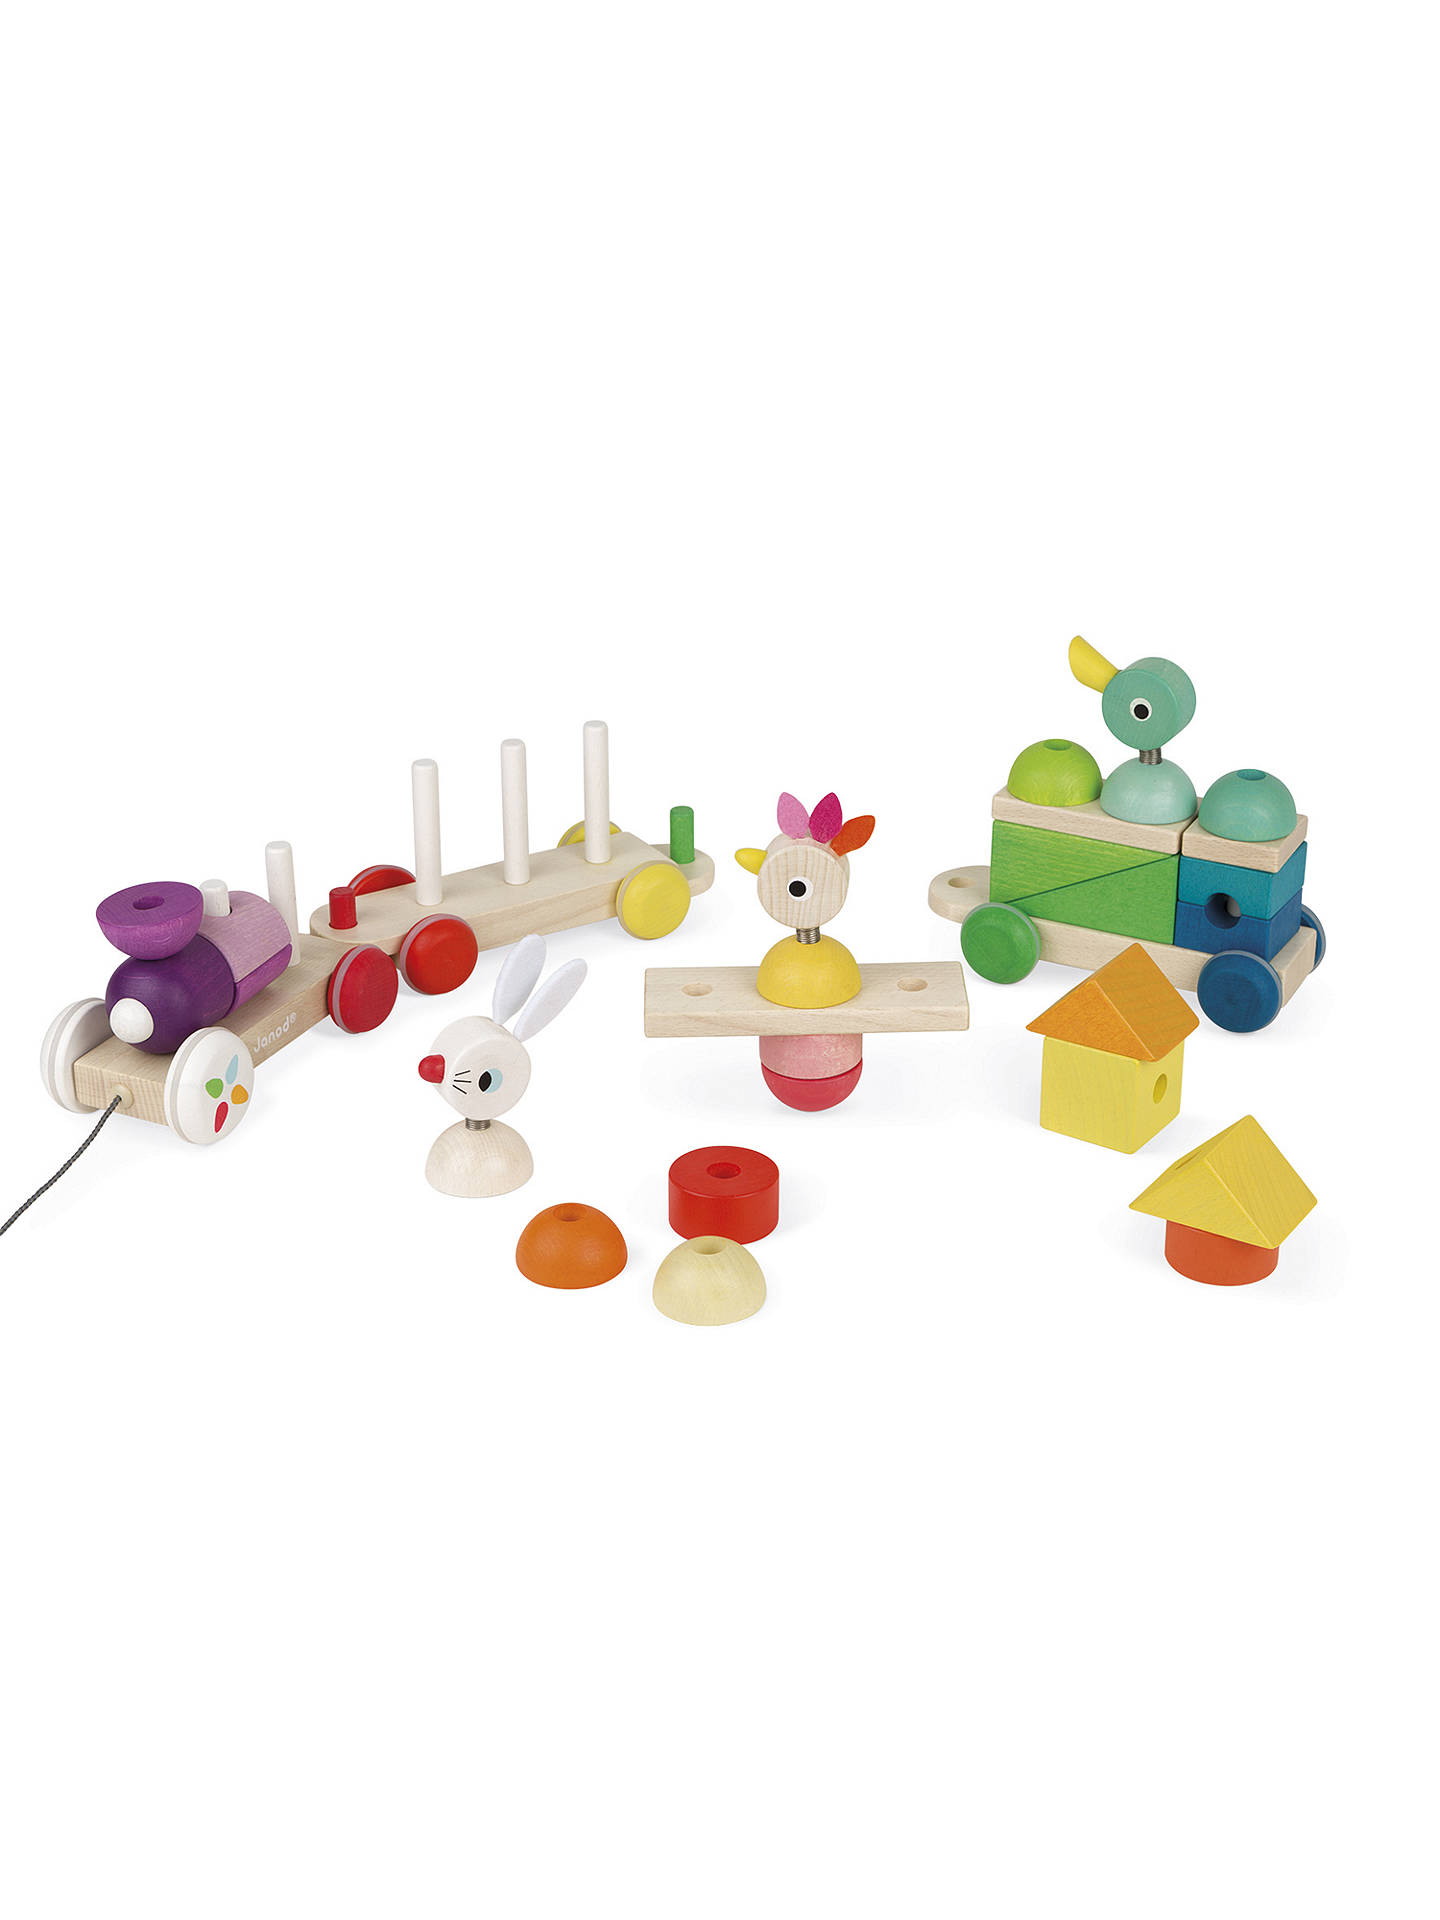 Buy Janod Zigolos Giant Train Wooden Play Set Online at johnlewis.com